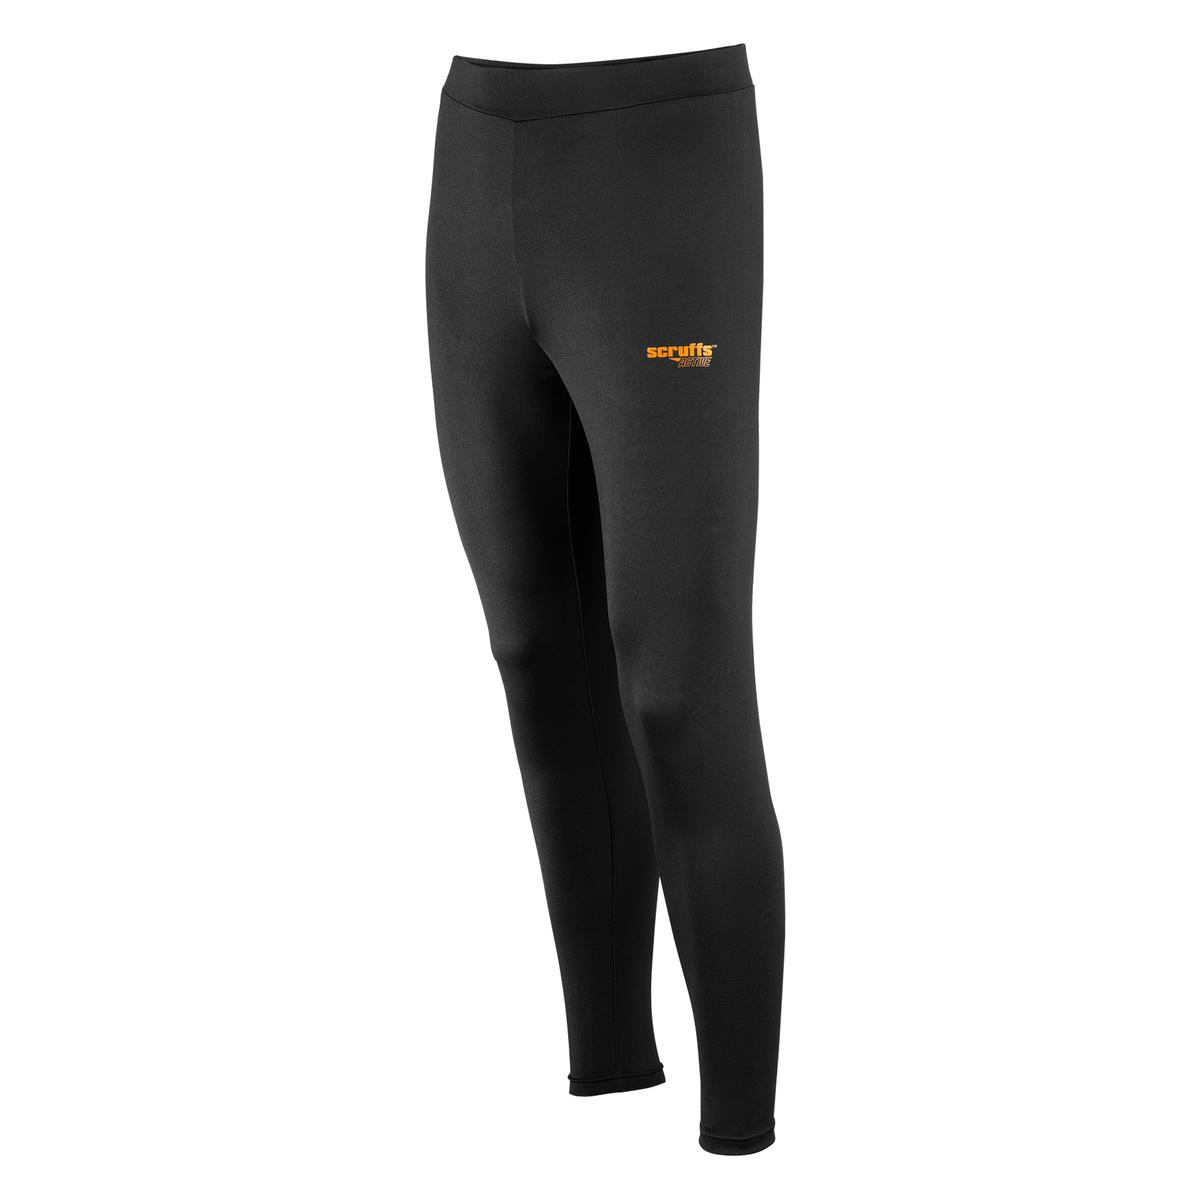 Scruffs Pro Baselayer Bottoms